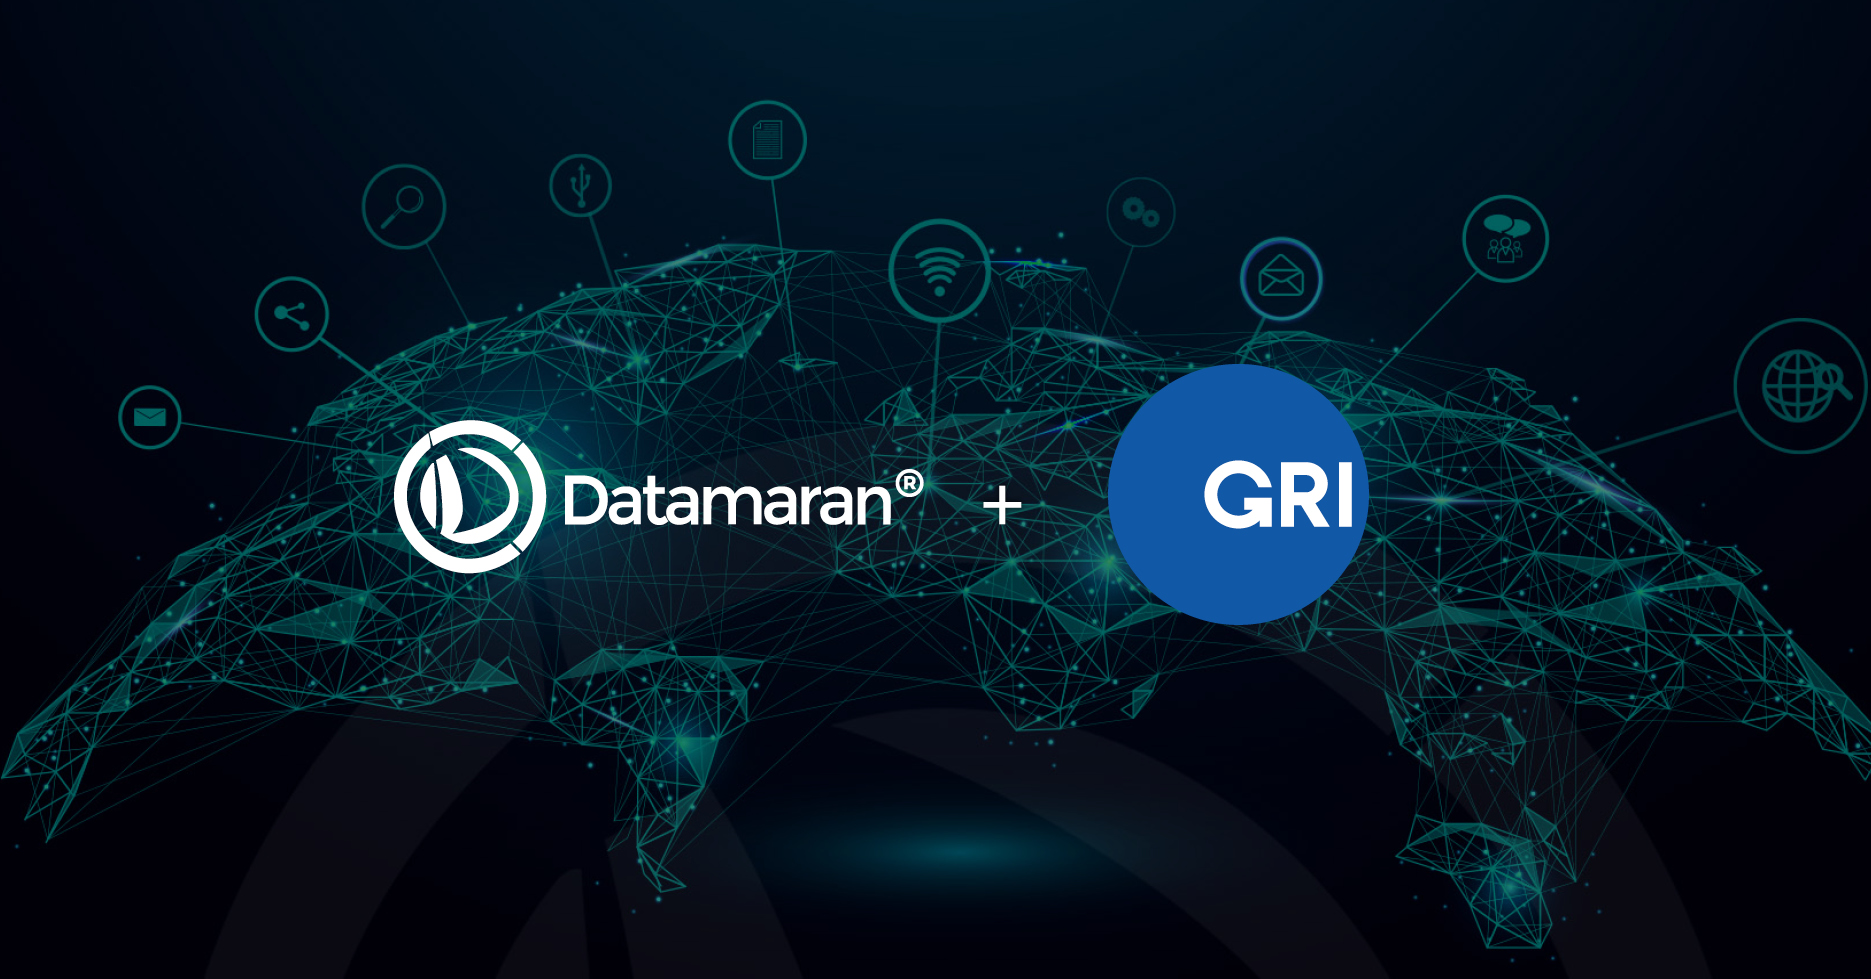 Improving sustainability disclosure through technology: partnership between Datamaran and GRI